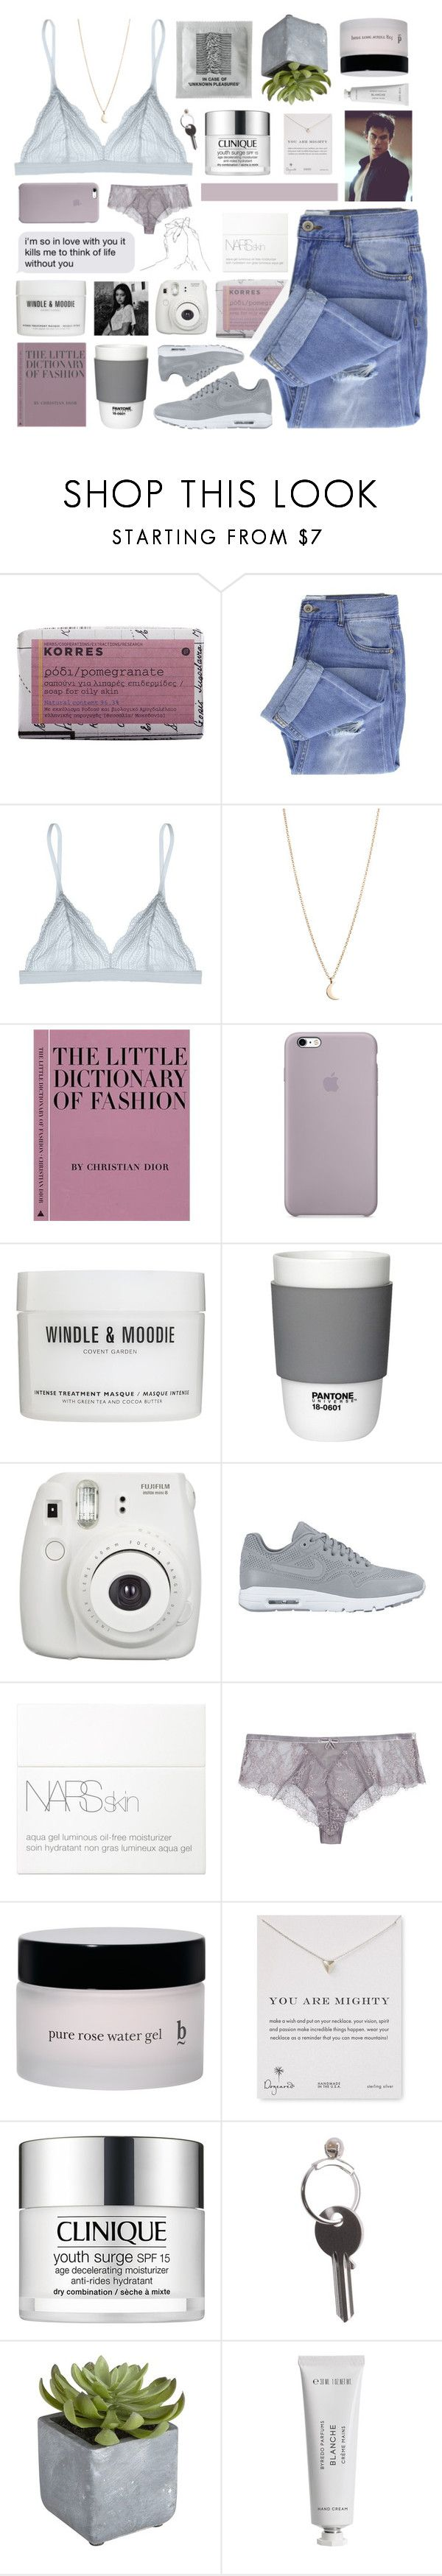 """KNOCK, KNOCK ON MY DOOR."" by samiikins ❤ liked on Polyvore featuring Korres, Taya, Cosabella, Minor Obsessions, Windle & Moodie, Pantone, Fujifilm, NIKE, NARS Cosmetics and Simone Perele"